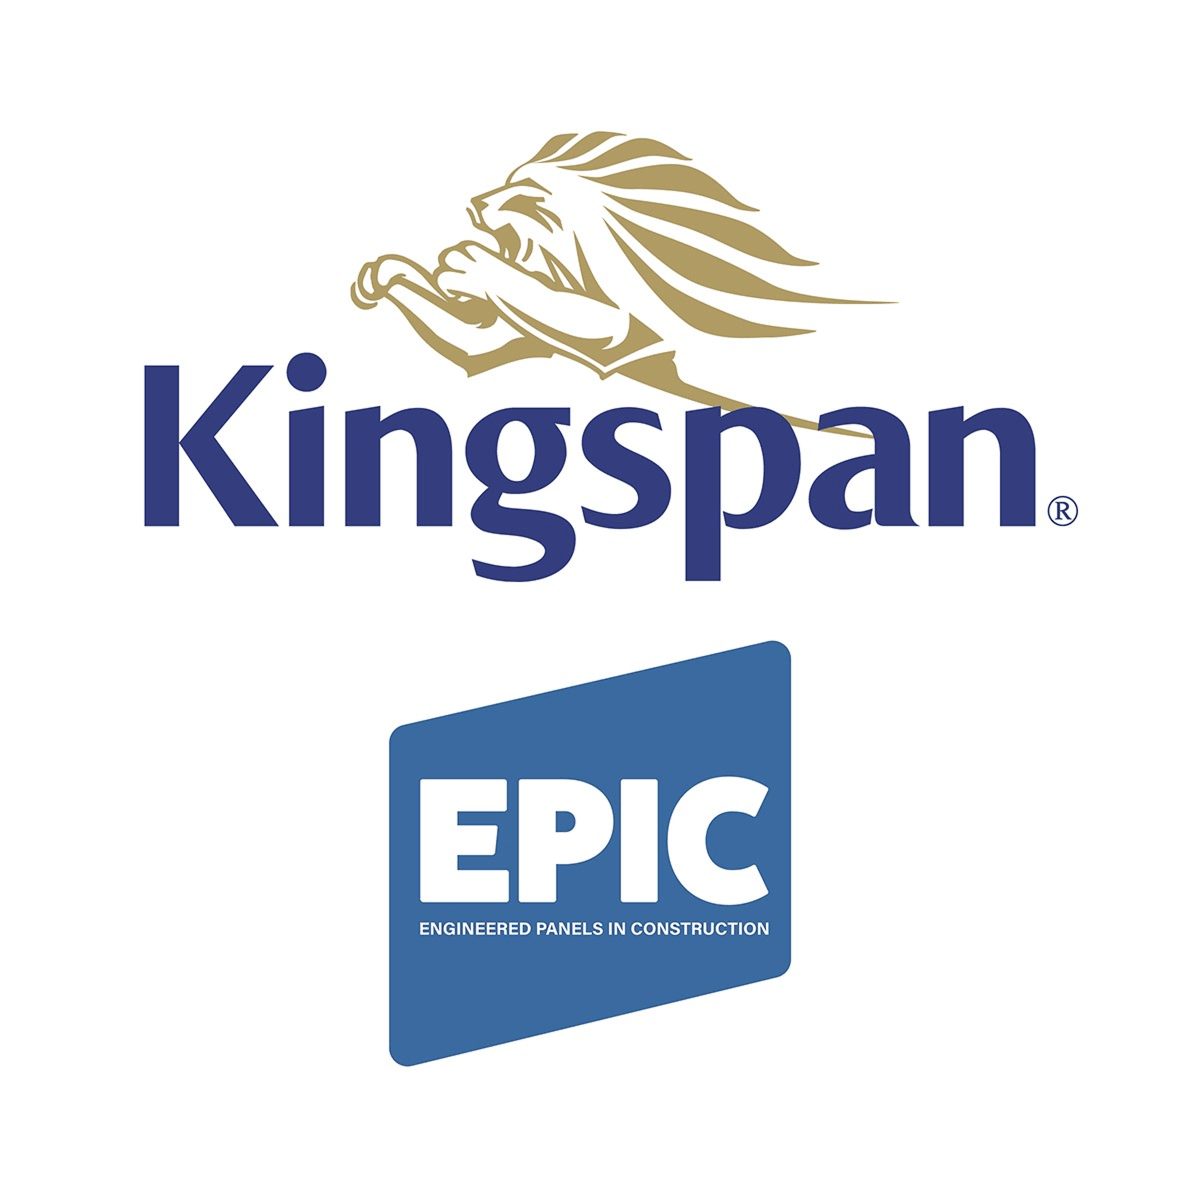 Kingspan Limited